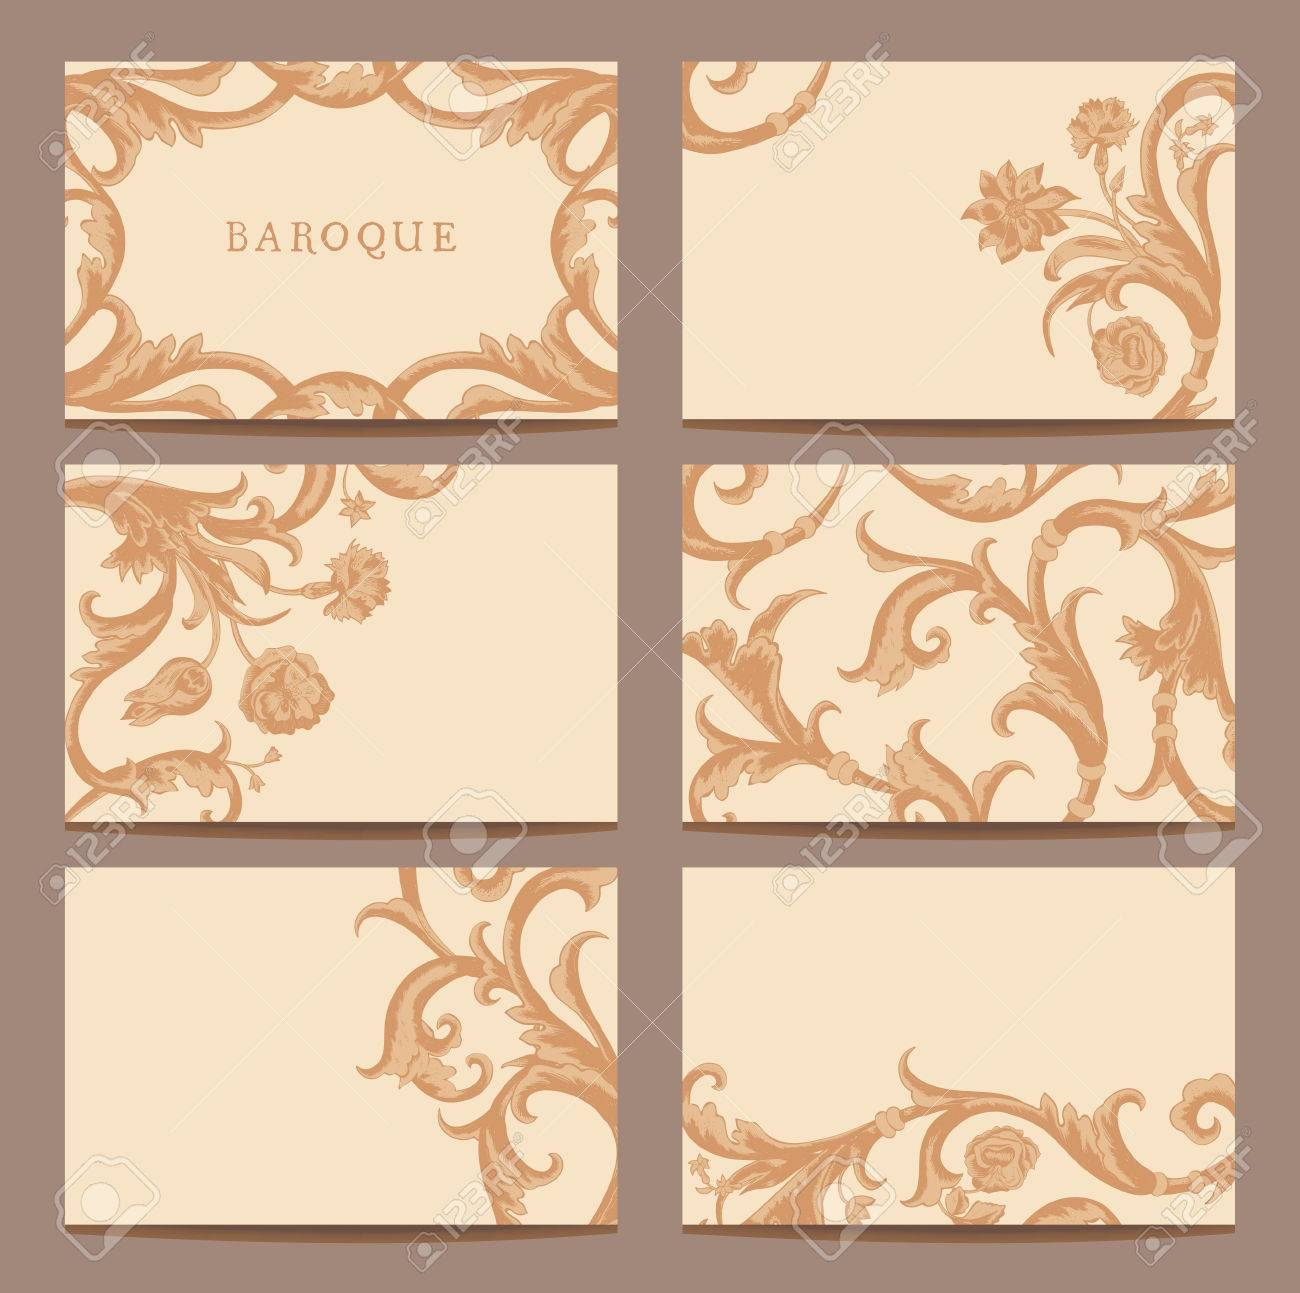 A set of horizontal business cards vintage in baroque style a set of horizontal business cards vintage in baroque style curls and flowers on a reheart Gallery